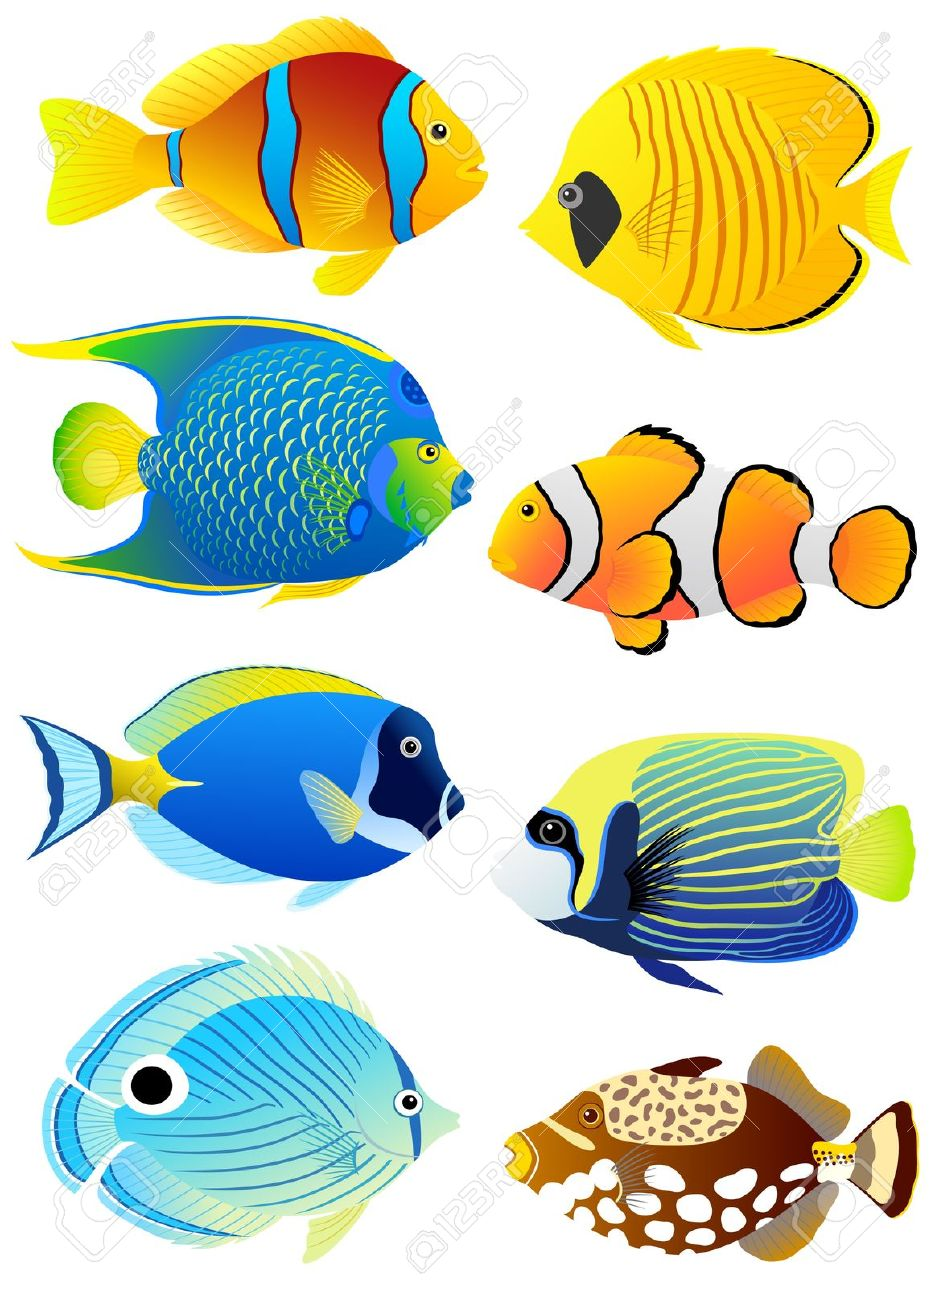 Angelfish clipart colourful fish Royalty Colorful Collection Illustration Royalty